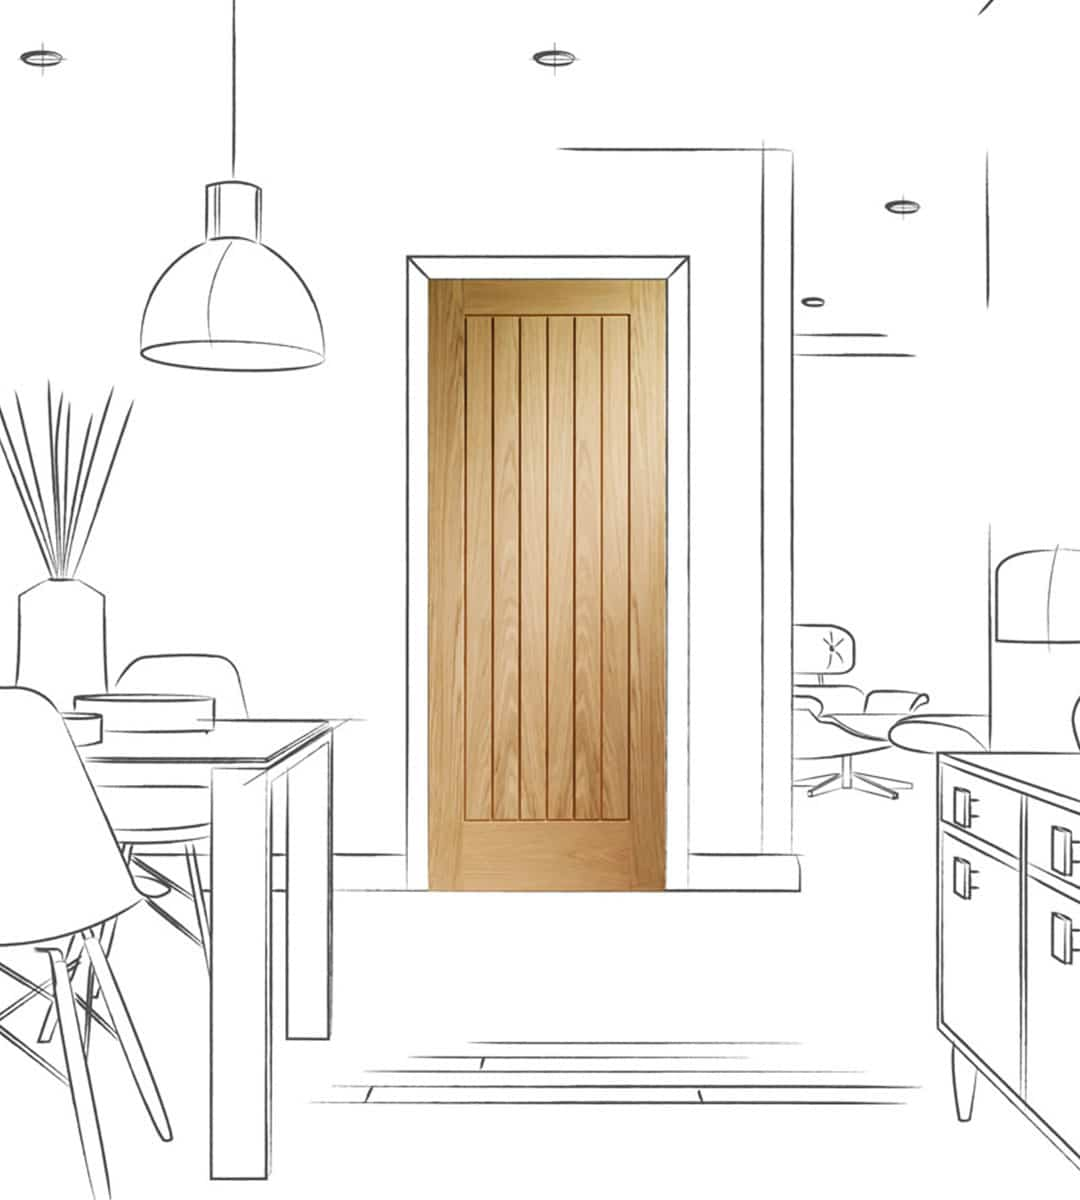 suffolk oak internal bedroom dining room door